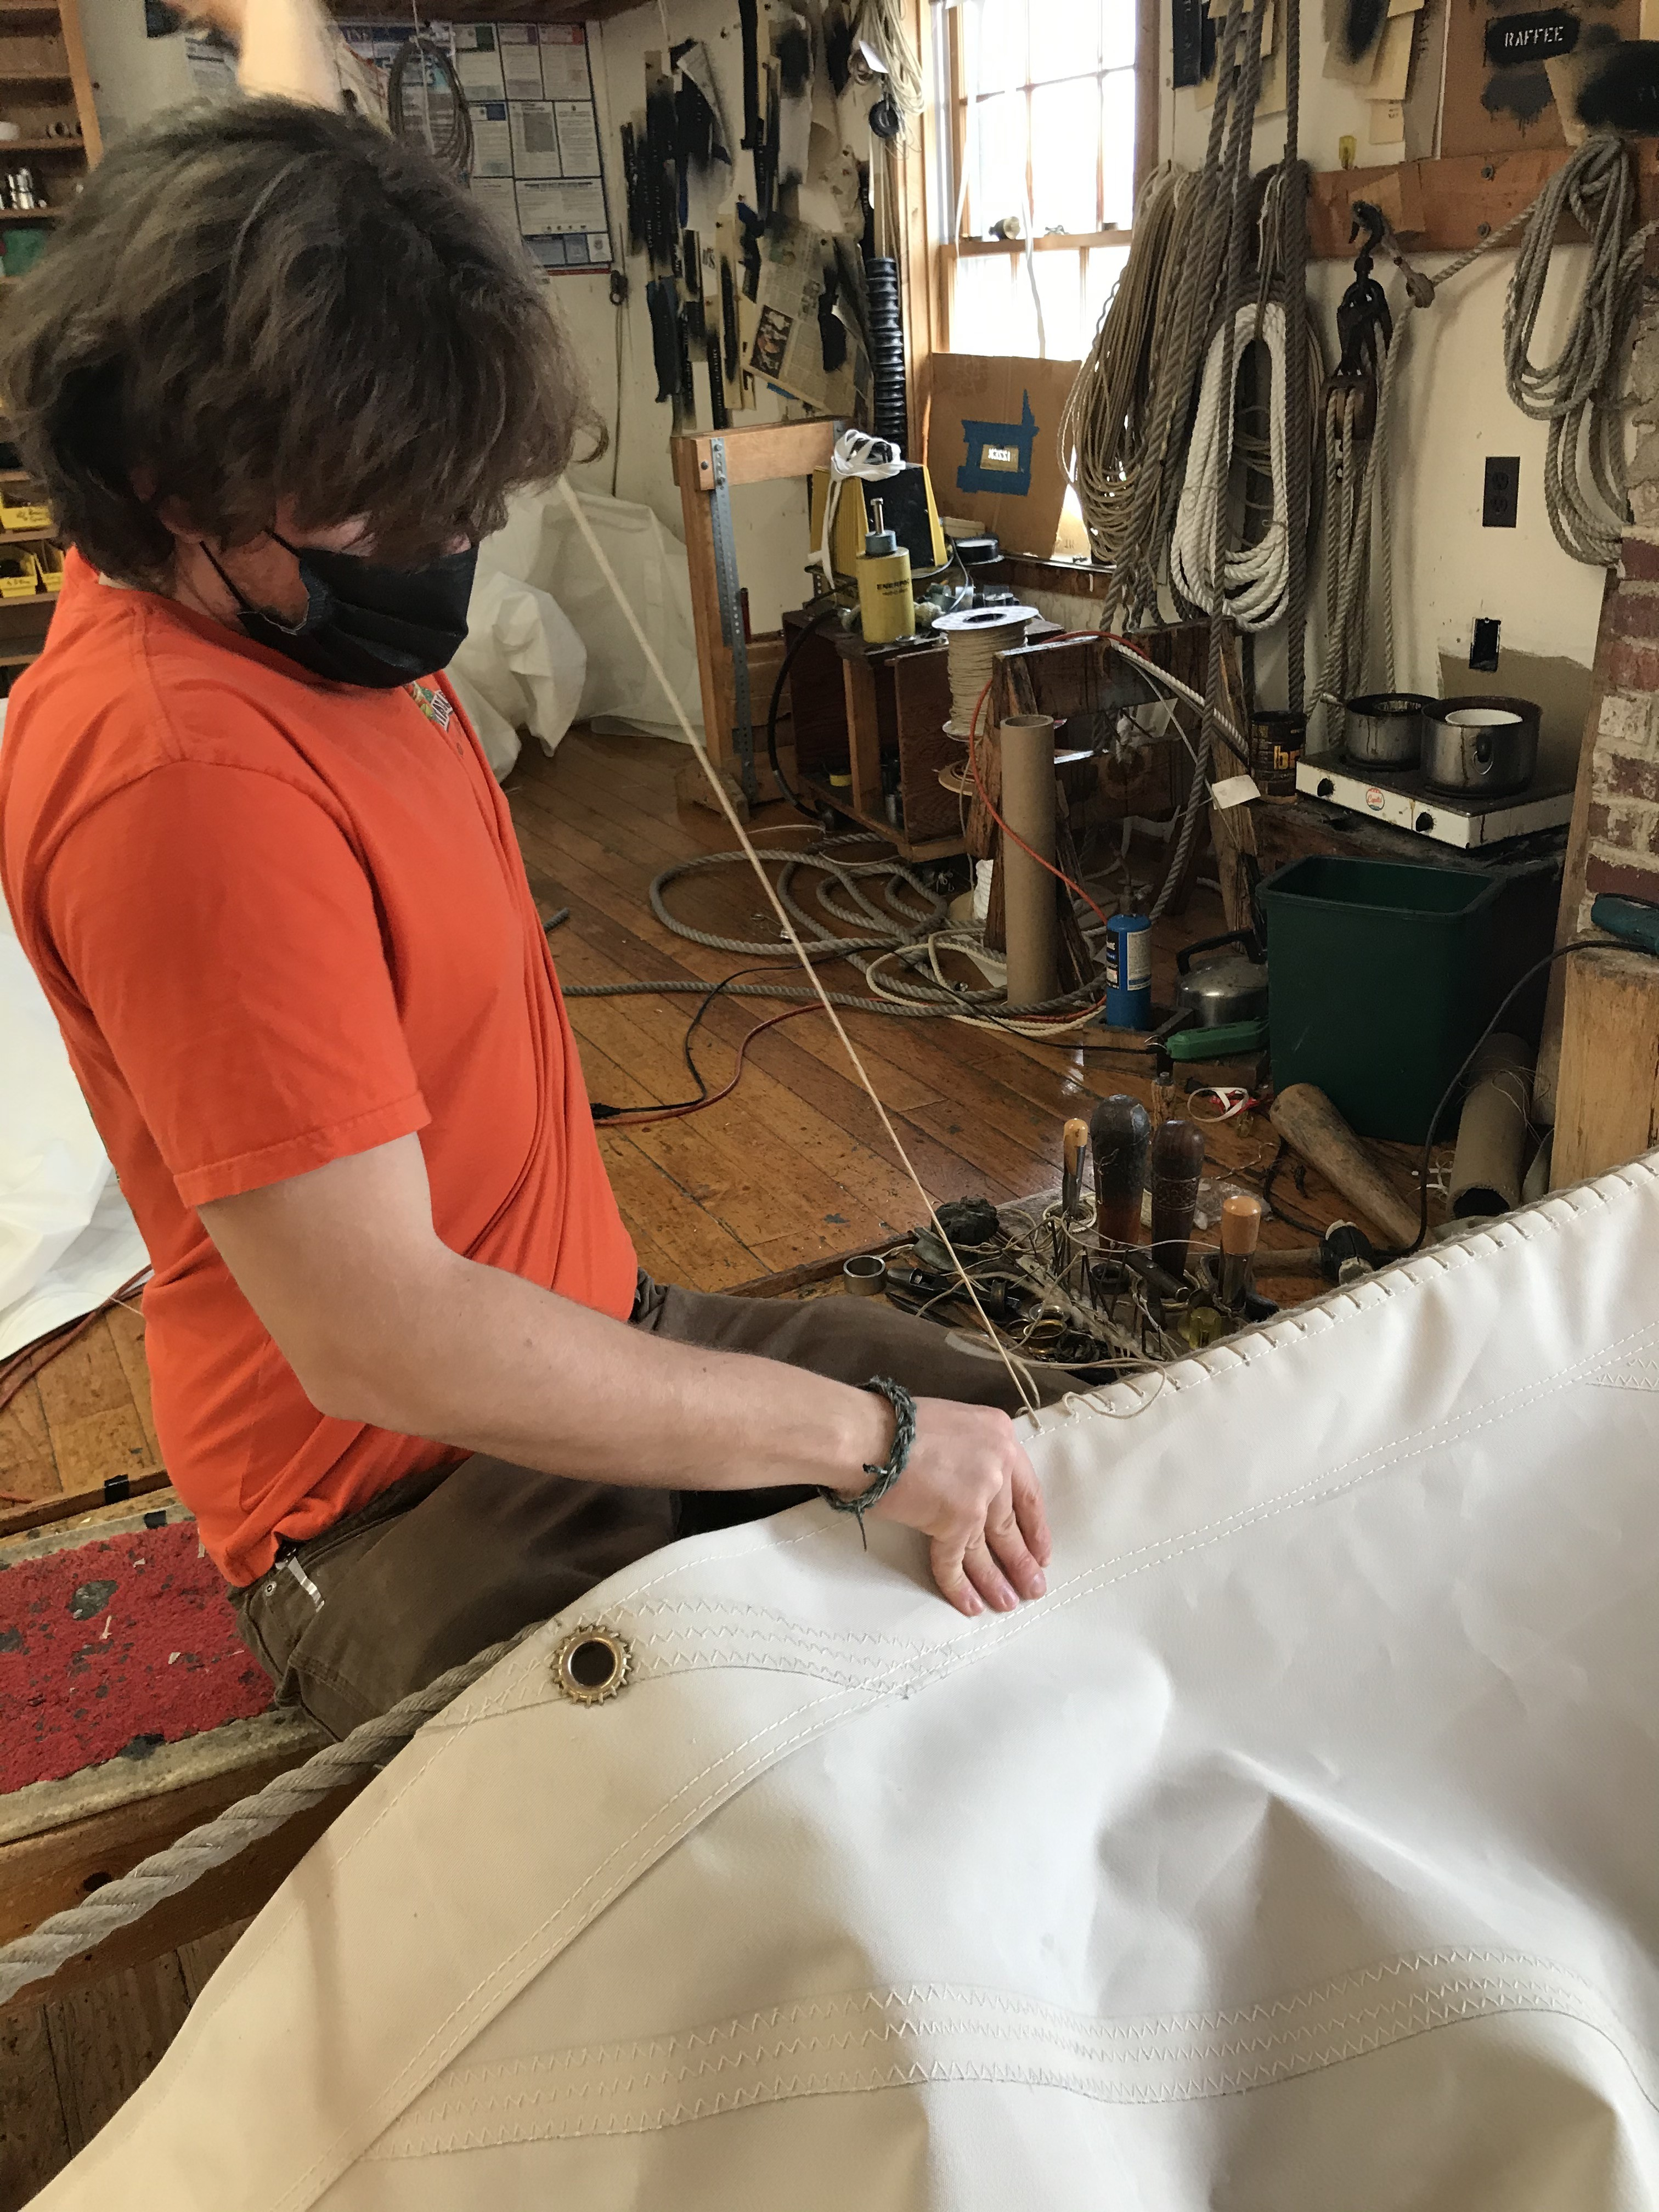 Sherman is busy stitching a luff rope into one of the headsails for Ernestina.  We love visiting the Wilson Sail-Loft to watch them handcrafting each sail with care and experience.